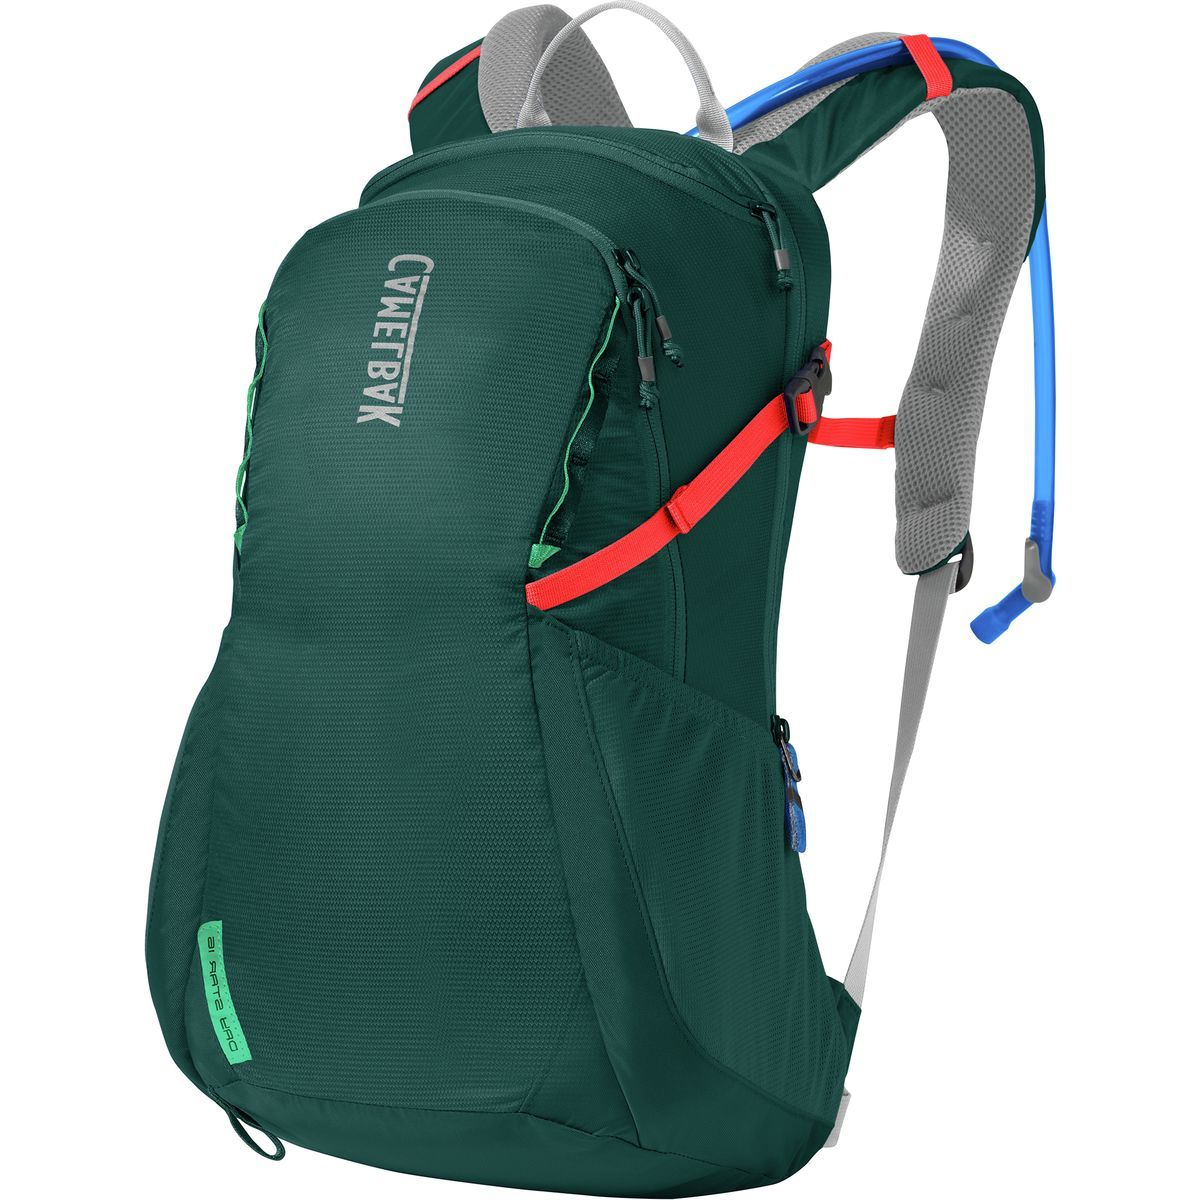 CamelBak Daystar 16L Backpack - Women's